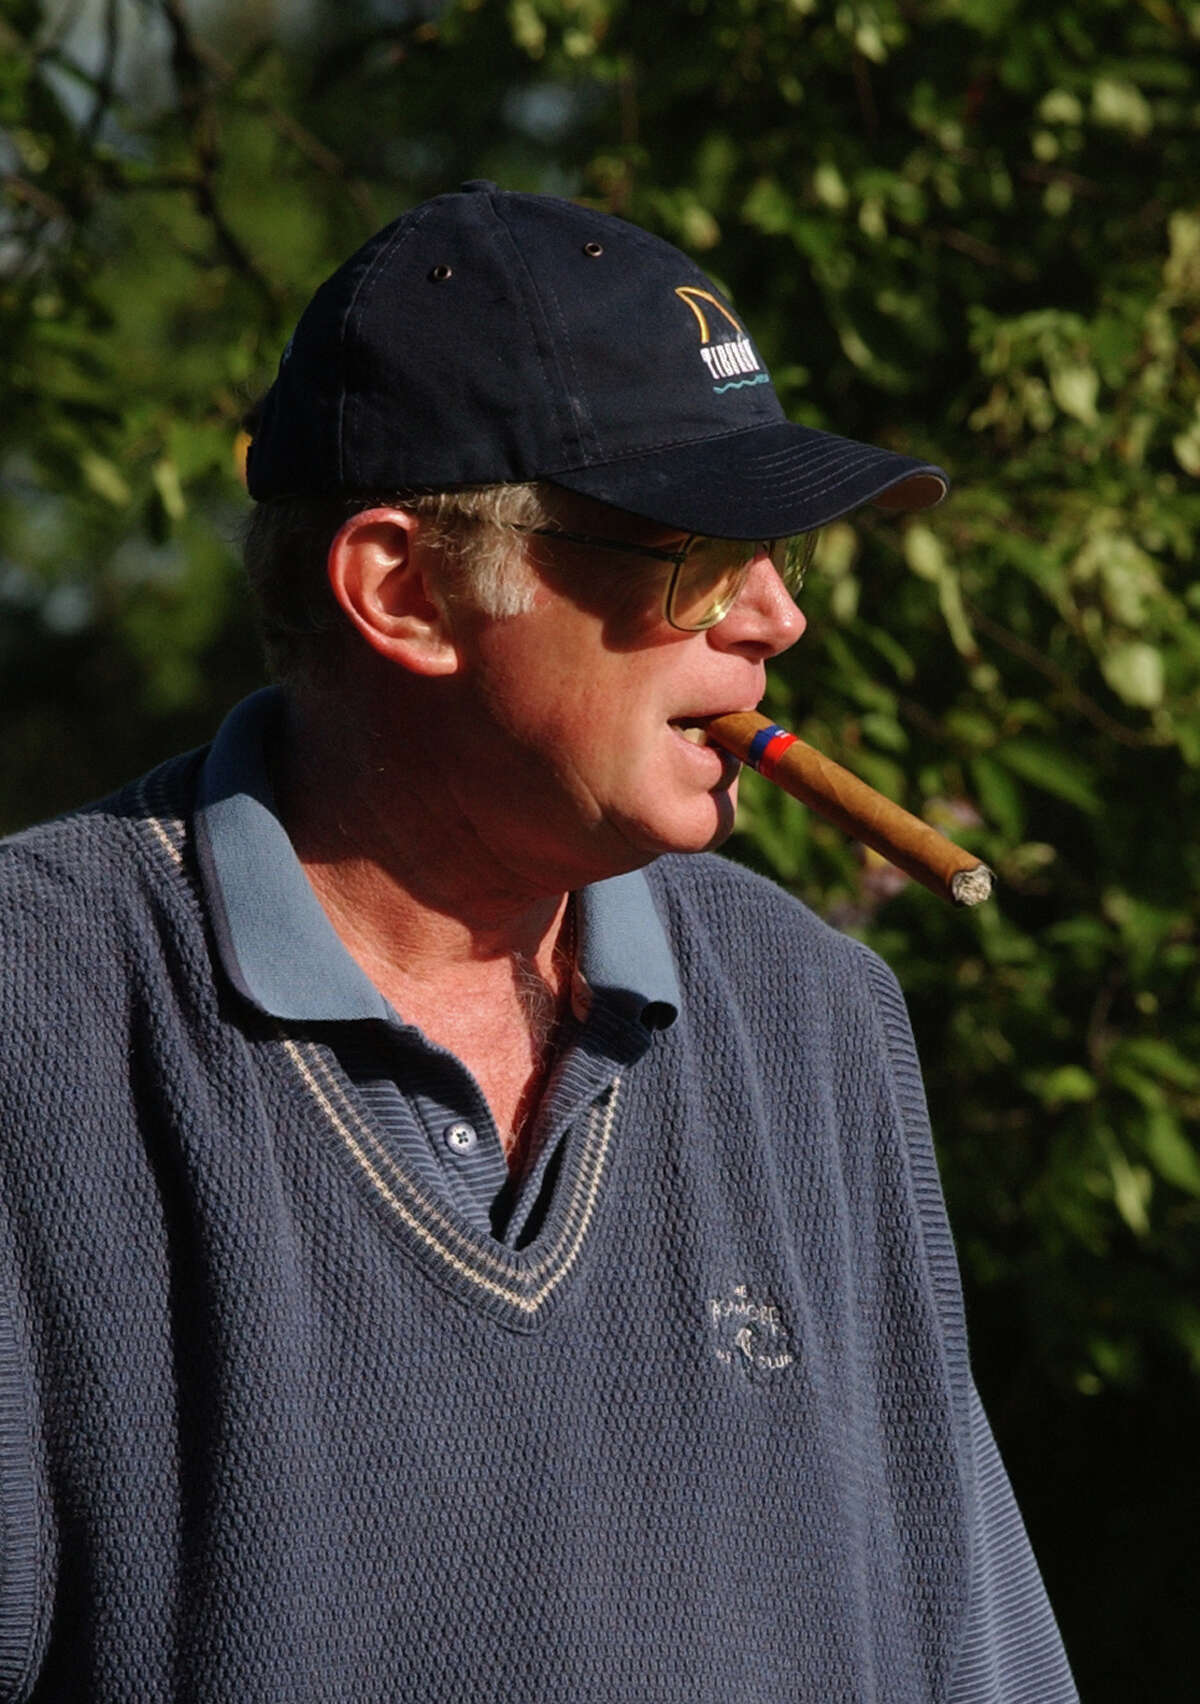 TIMES UNION STAFF PHOTO BY SKIP DICKSTEIN Charlie Murphy with his everpresent cigar at the first tee of the New York State Golf Association Senior Amateur held at the Normanside CC in Delmar New York September 16, 2003.